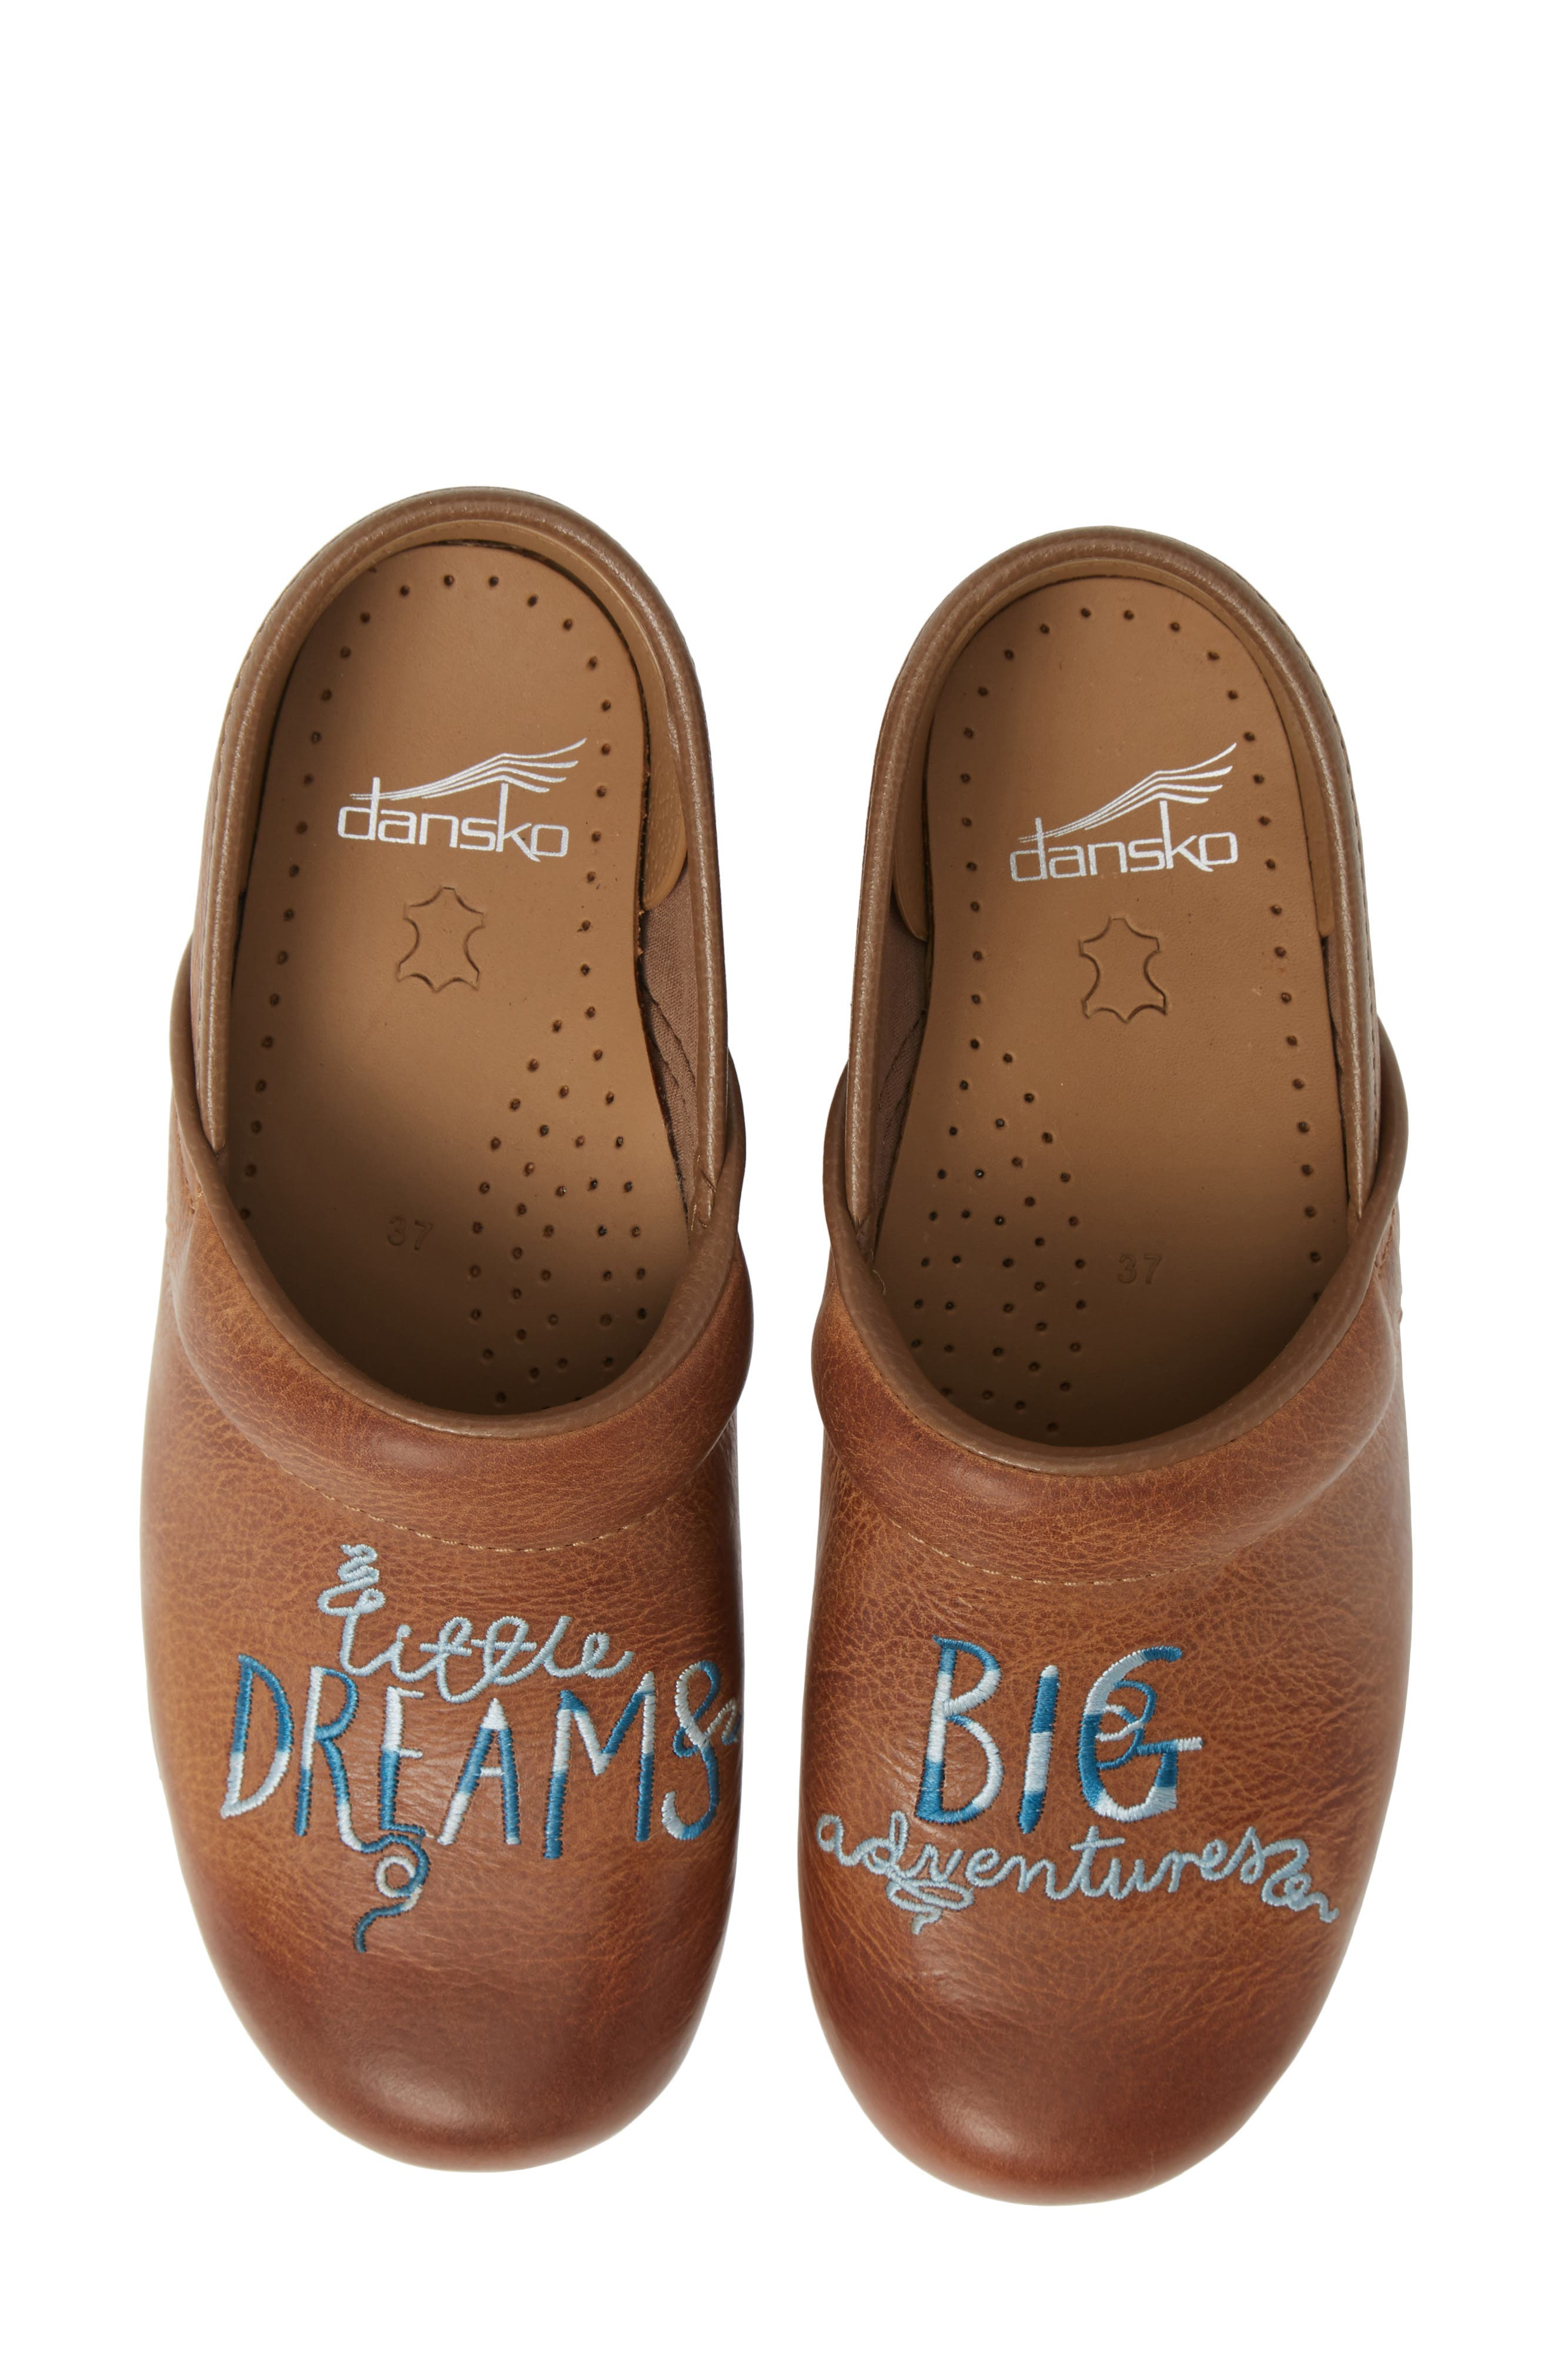 DANSKO Twin Pro Embroidered Clog, Main, color, DREAMS LEATHER